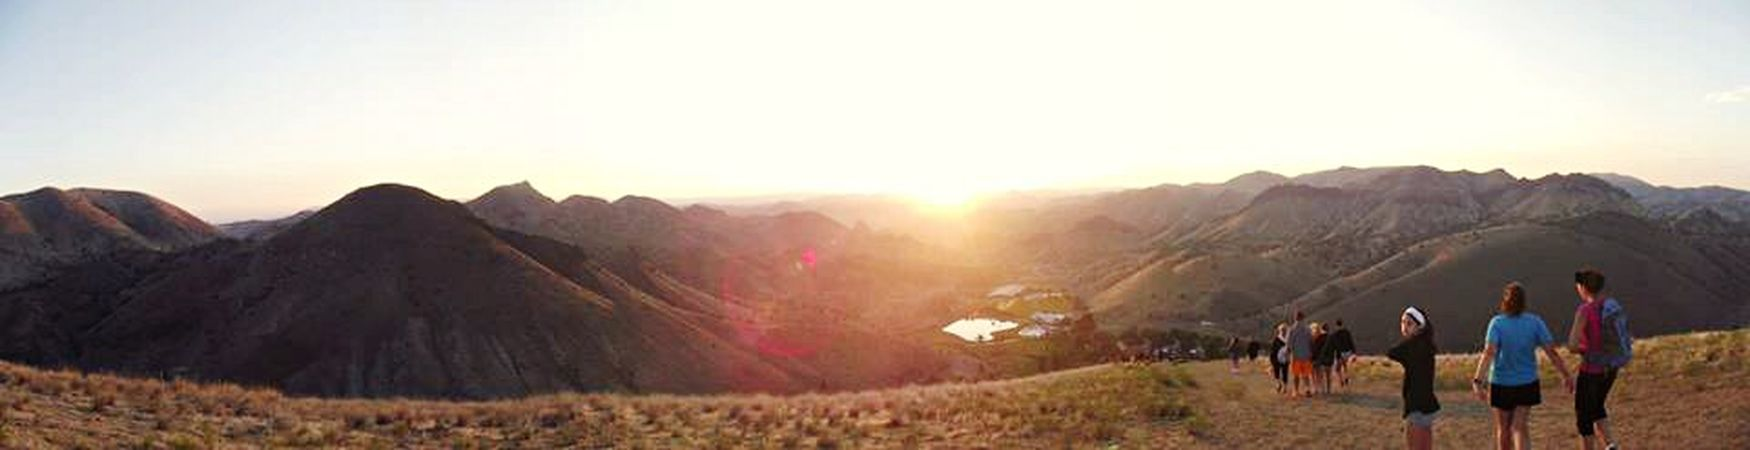 The EyeEm Facebook Cover Challenge Younglife Washingtonfamilyranch